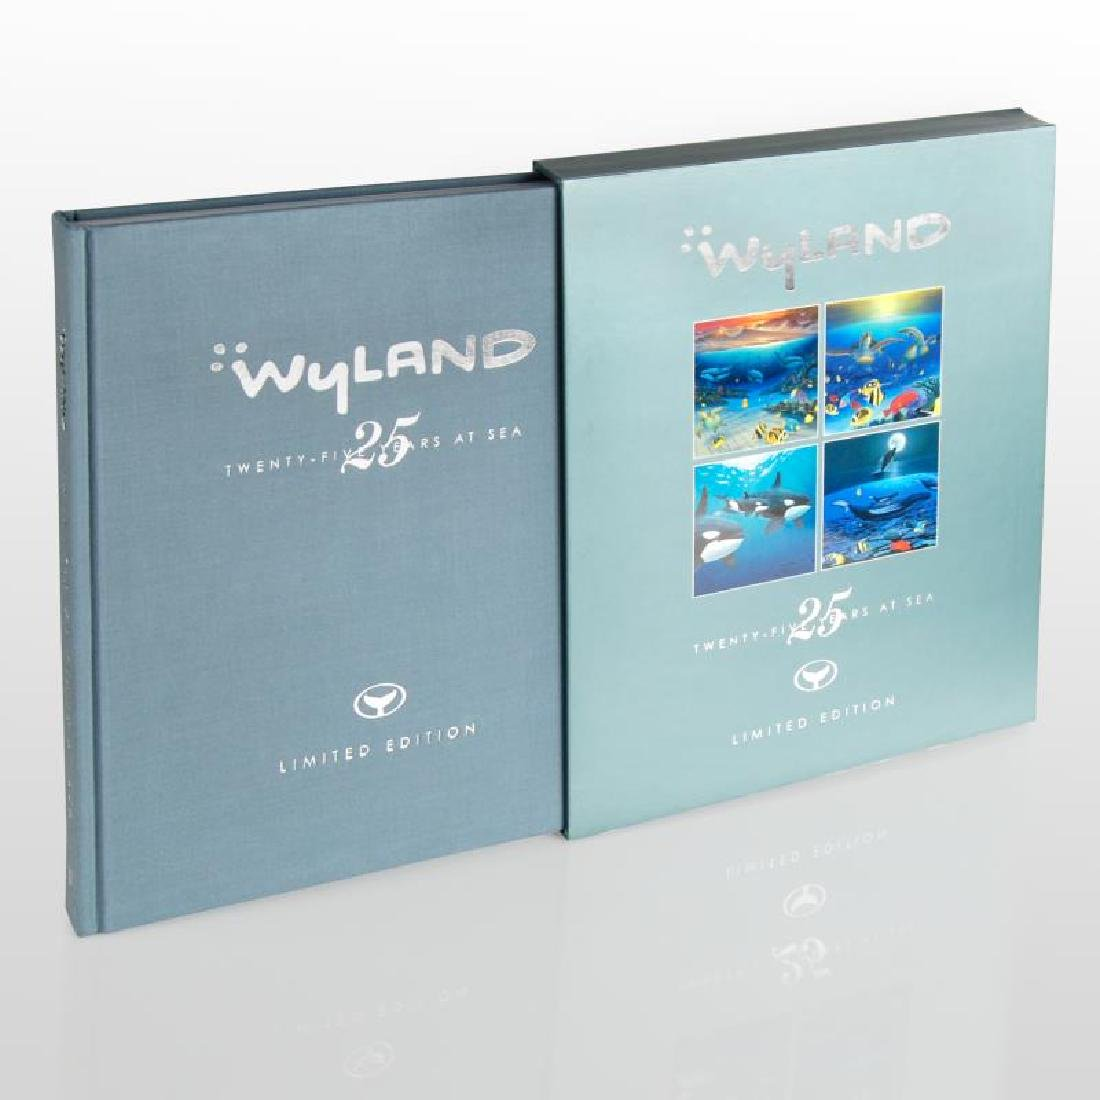 25 Years at Sea by Wyland